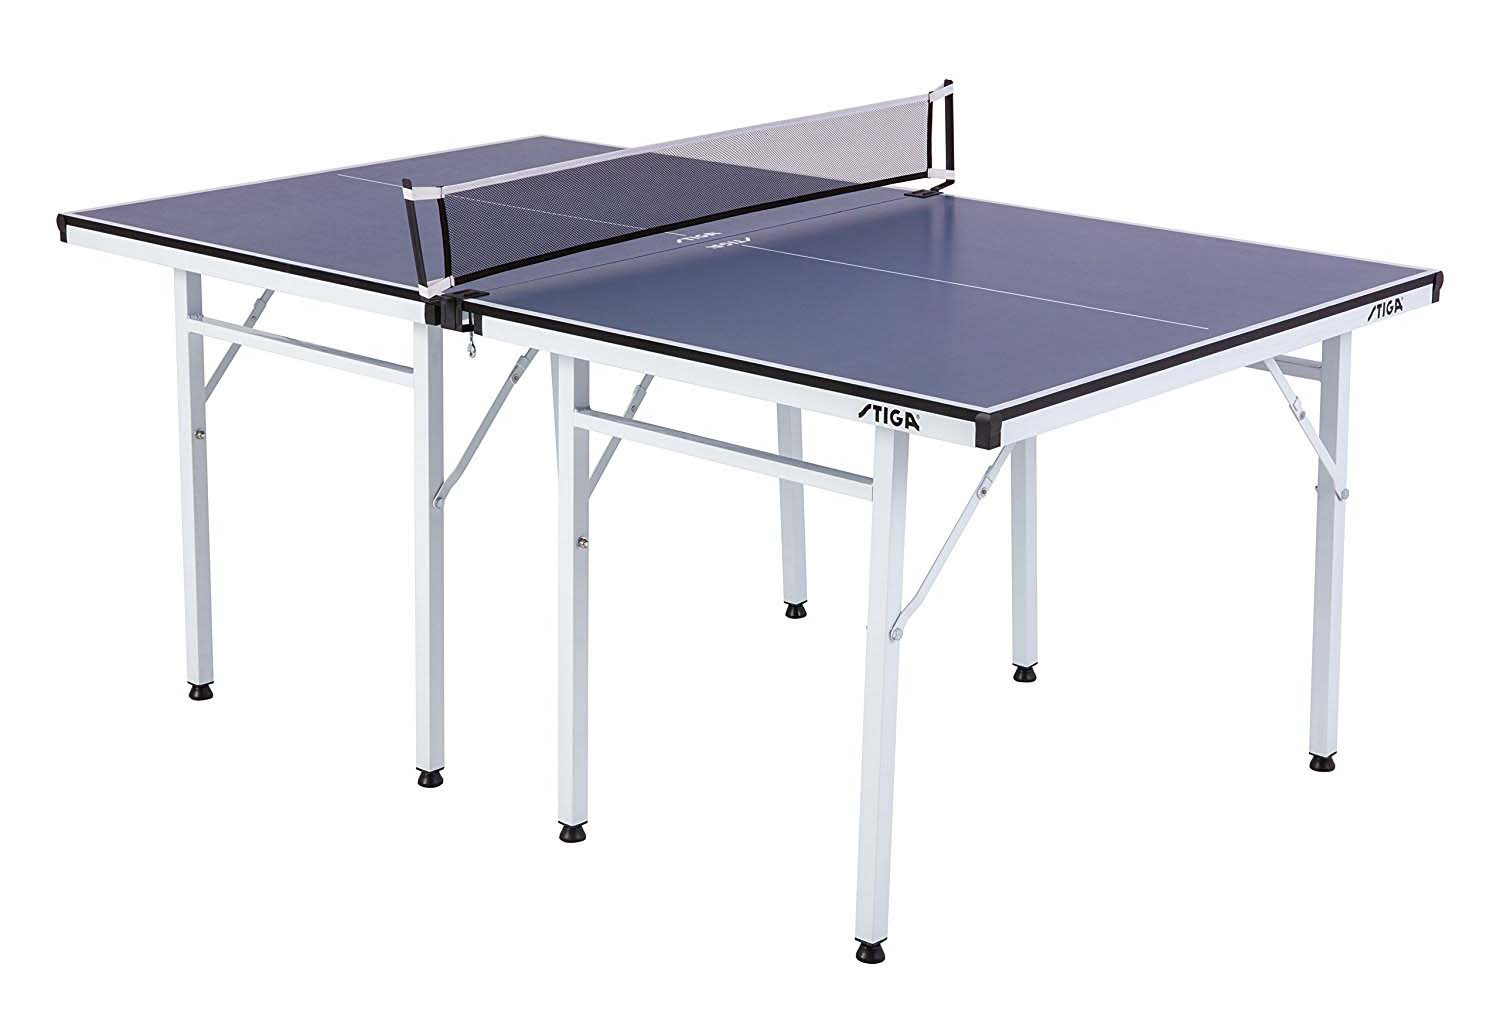 4. STIGA Space Saver Table Tennis Table